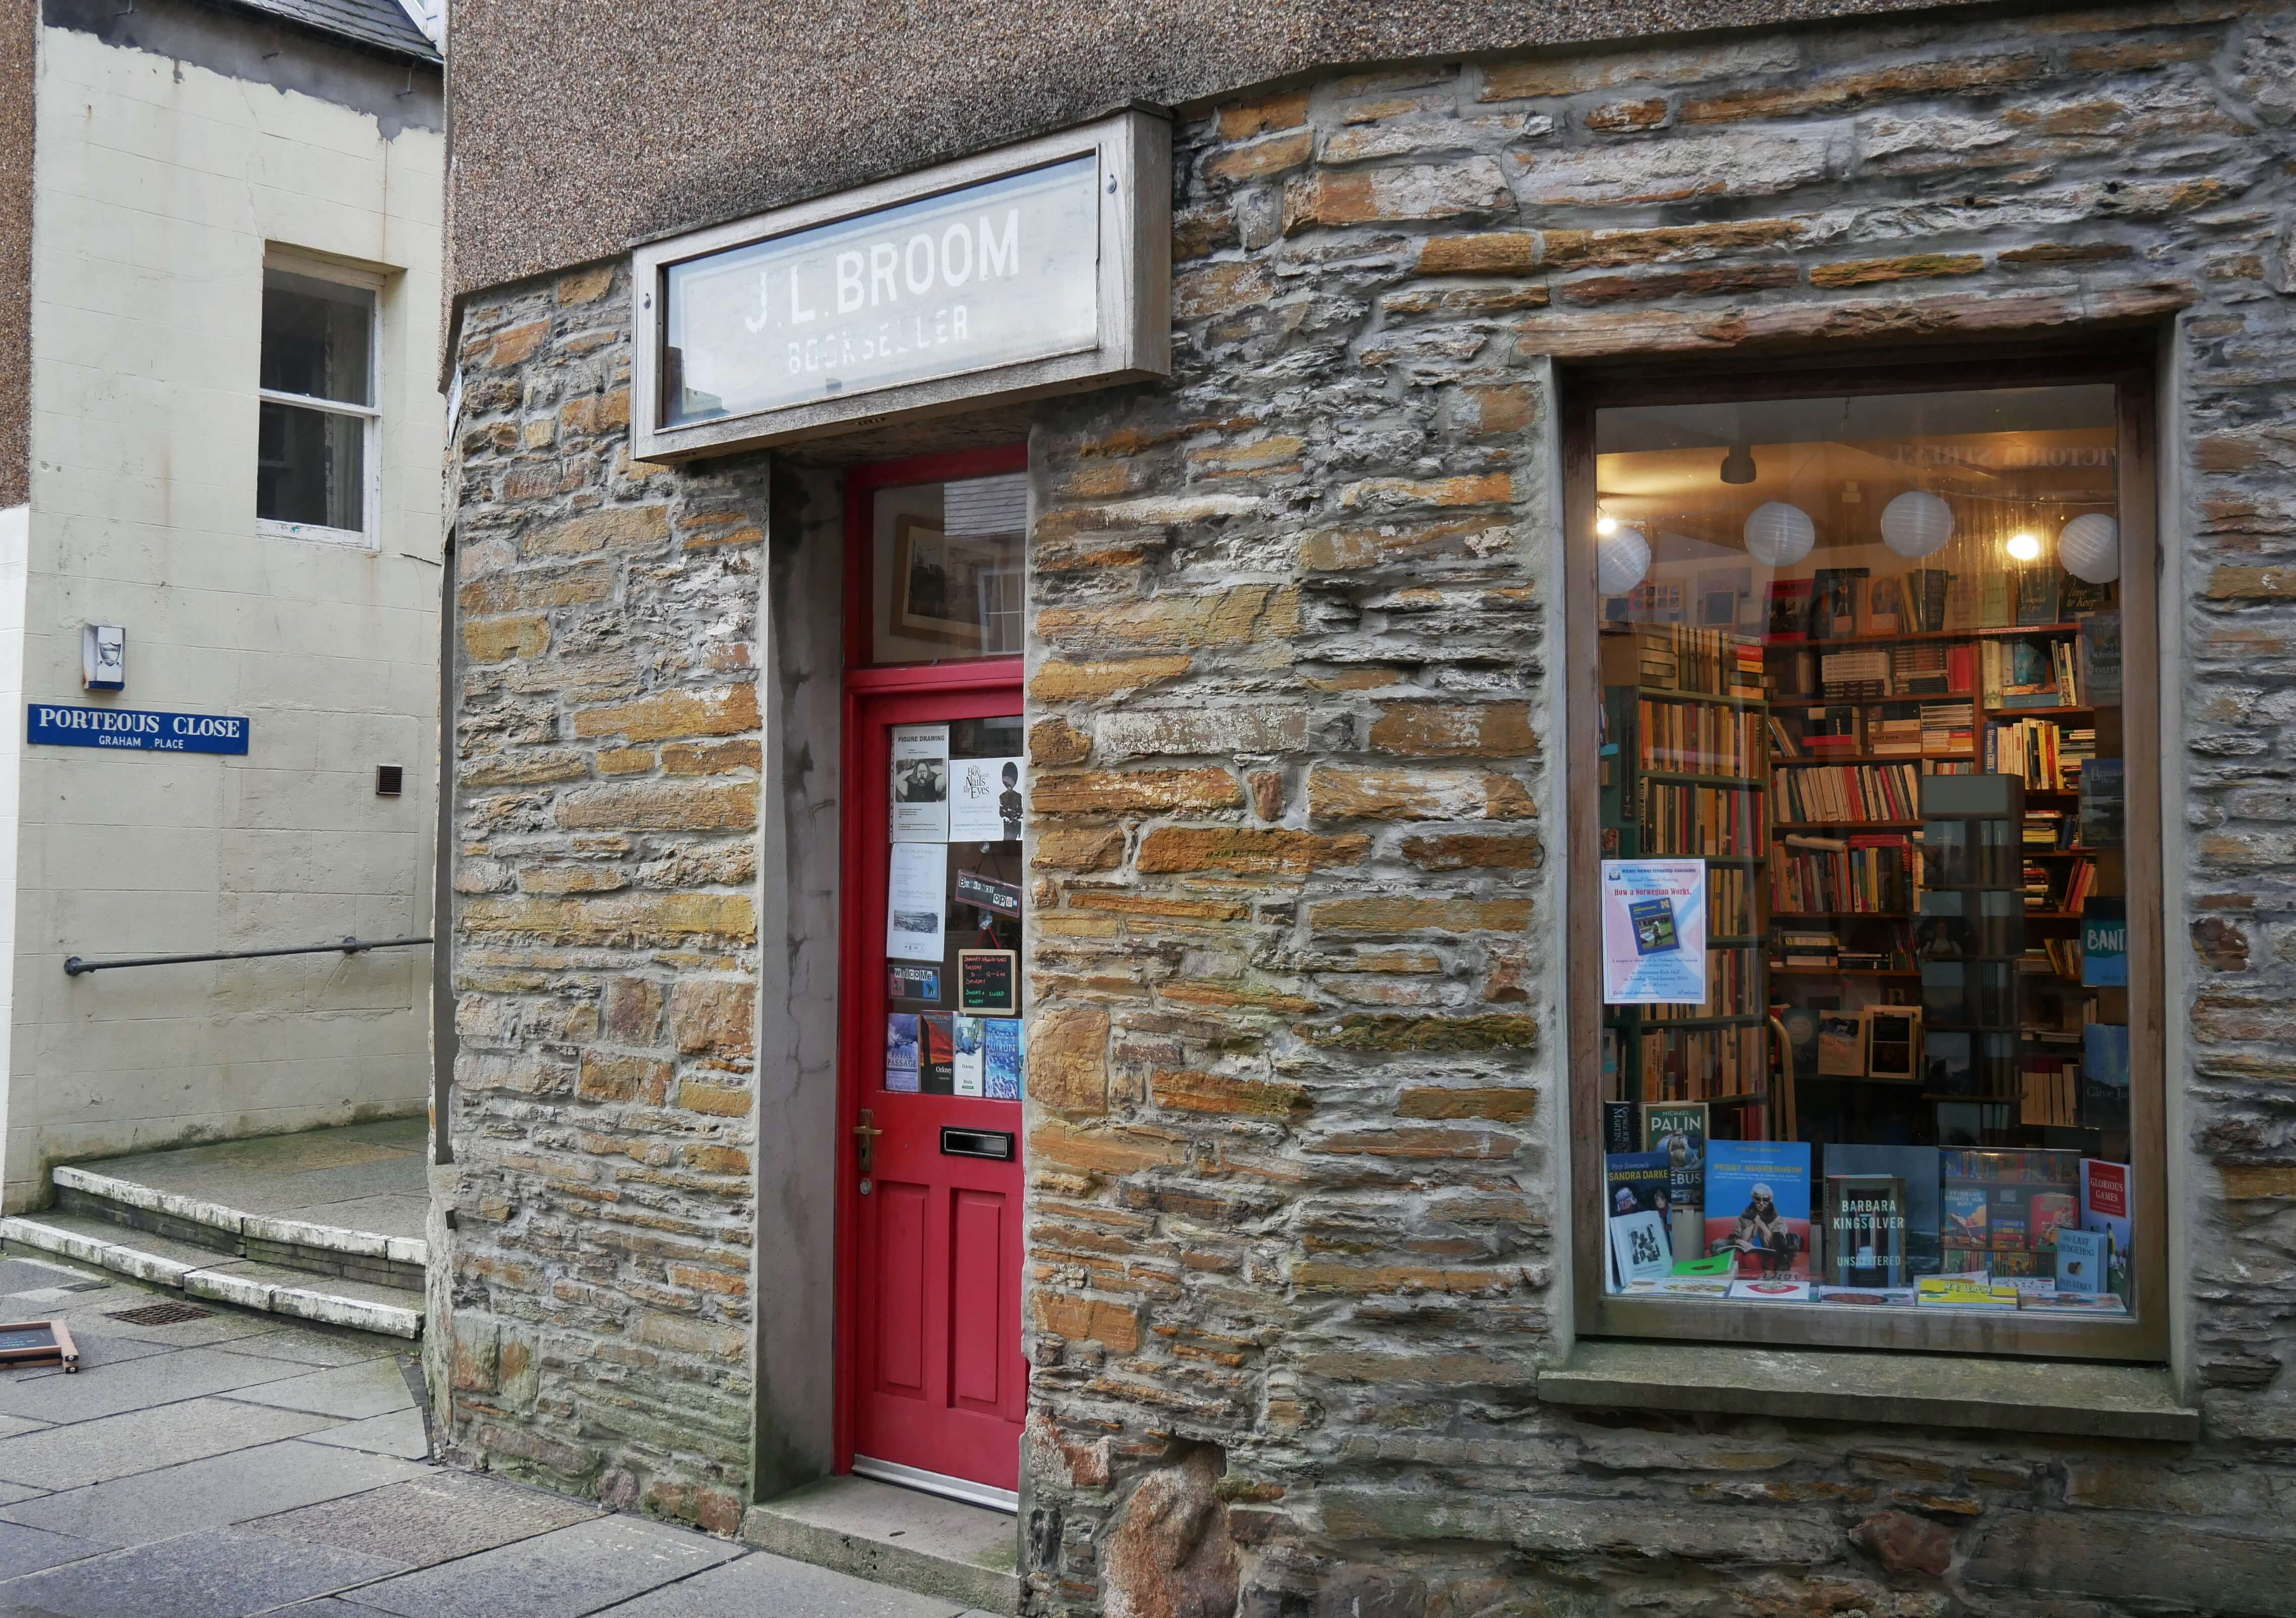 Stromness Books and Prints - a delightful, wee book shop in Stromness, Orkney Islands Scotland, where writer GMB used to spend a bit of time